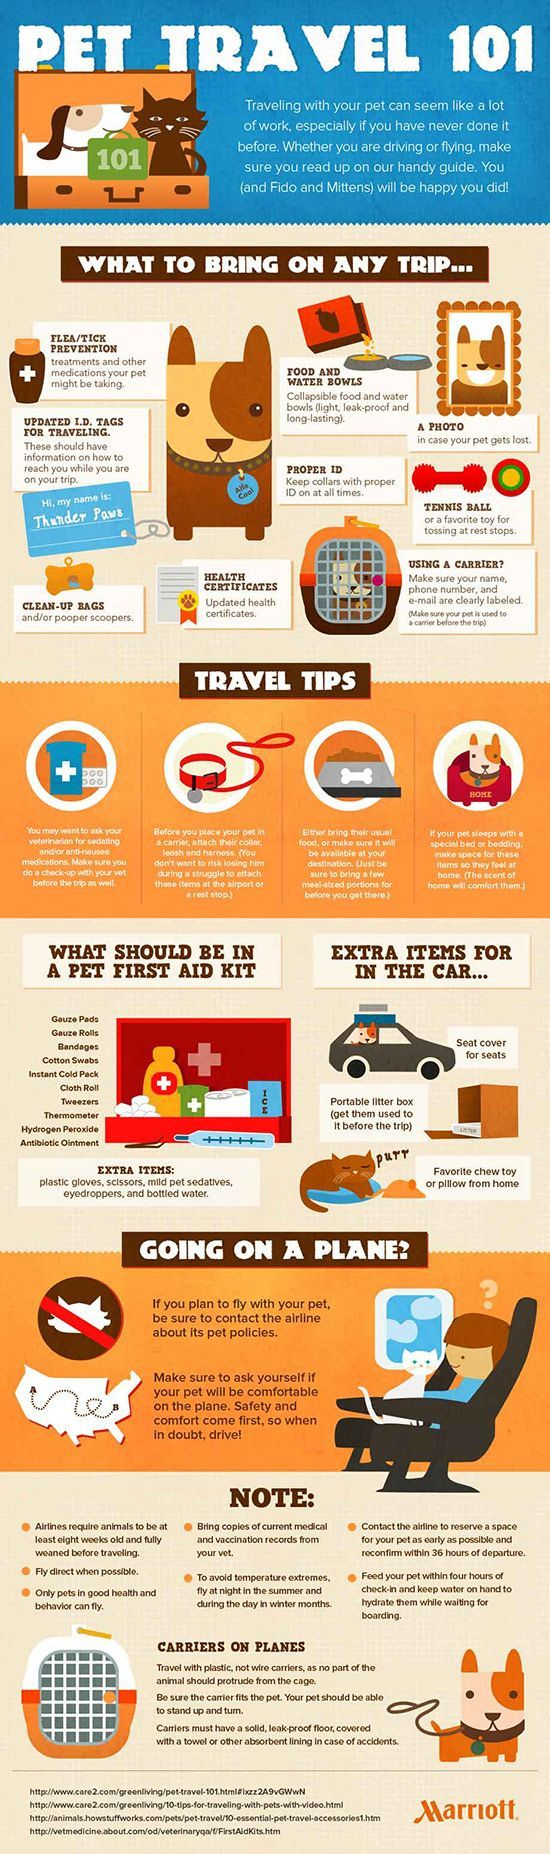 Tips to Travel With Pets